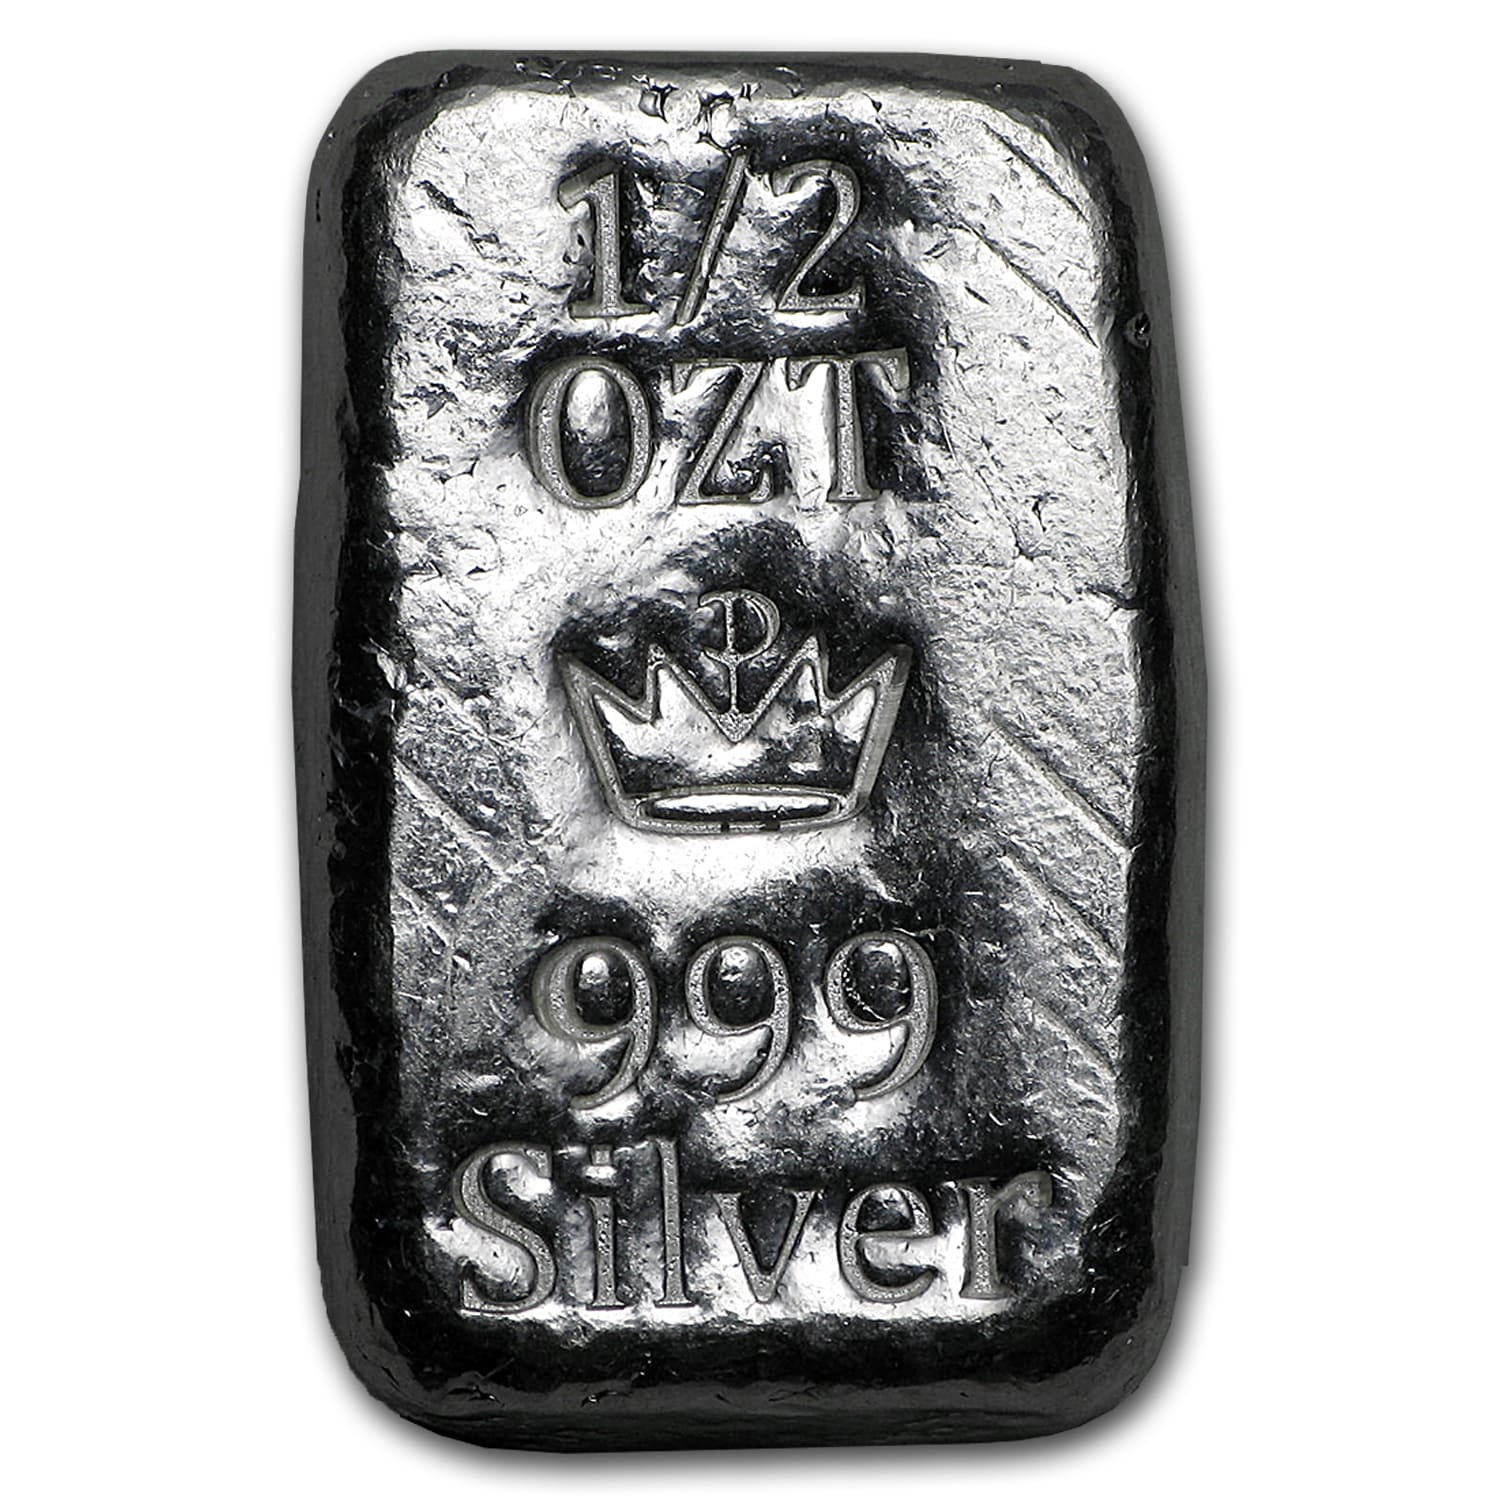 1/2 oz Silver Bar - Monarch Precious Metals